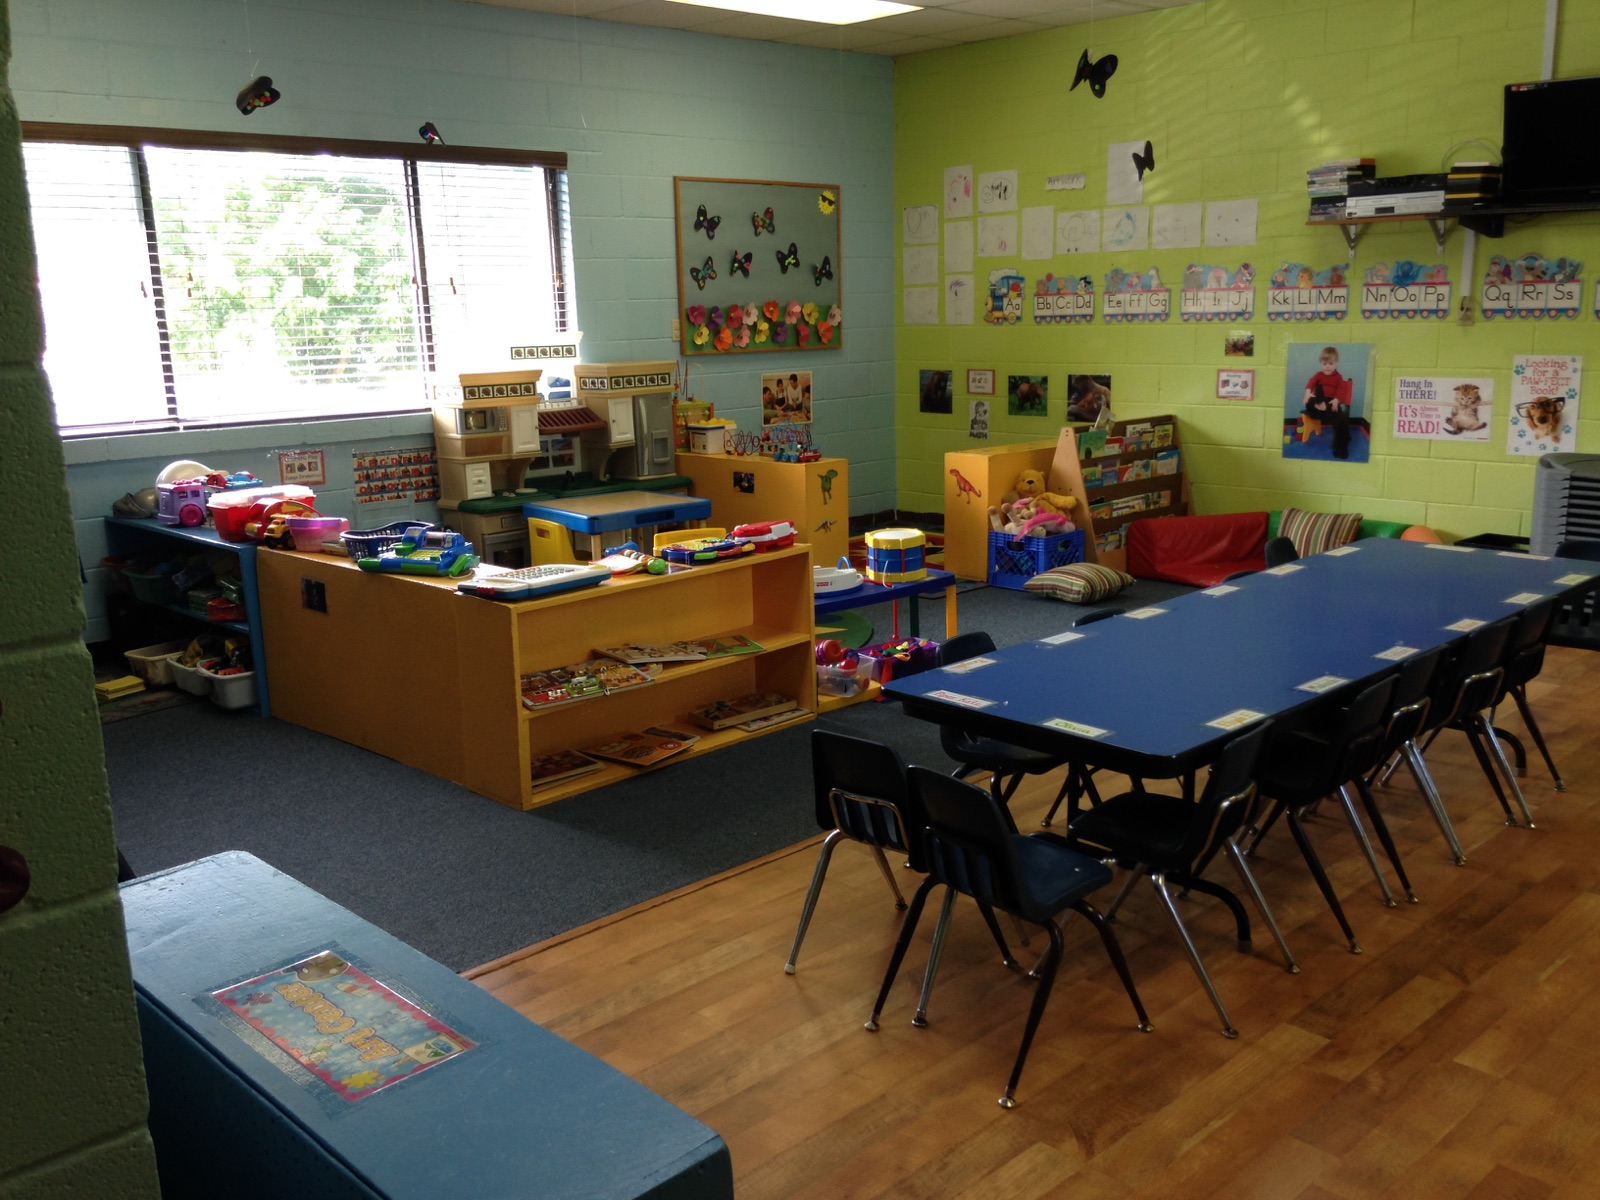 Preschool program creative learning child care for 4 yr old bedroom ideas